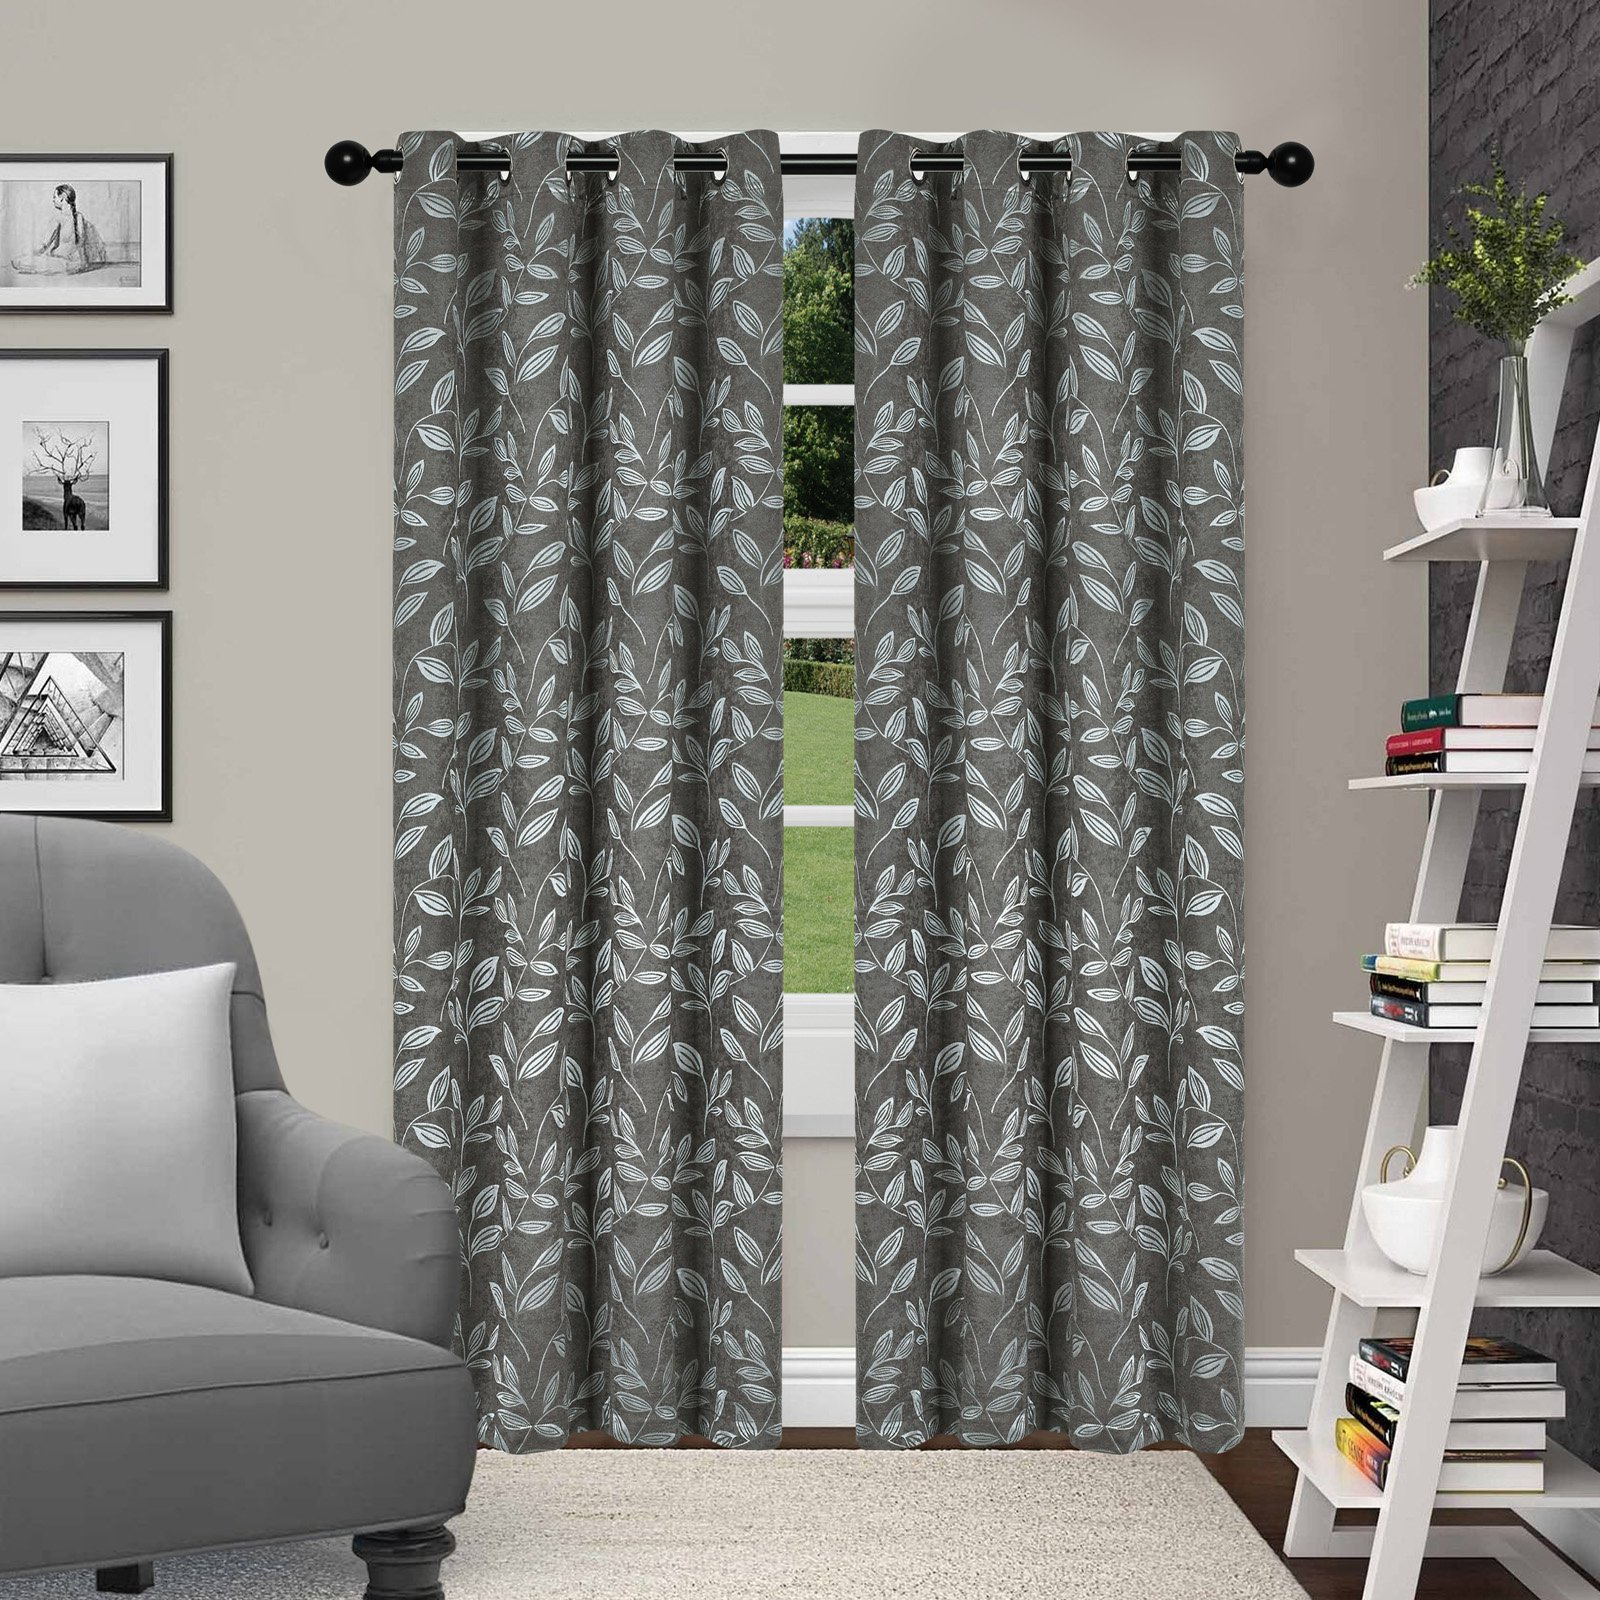 Superior Leaves Blackout 2 Panel Curtains Ivory In 2019 Within Superior Leaves Insulated Thermal Blackout Grommet Curtain Panel Pairs (View 9 of 30)